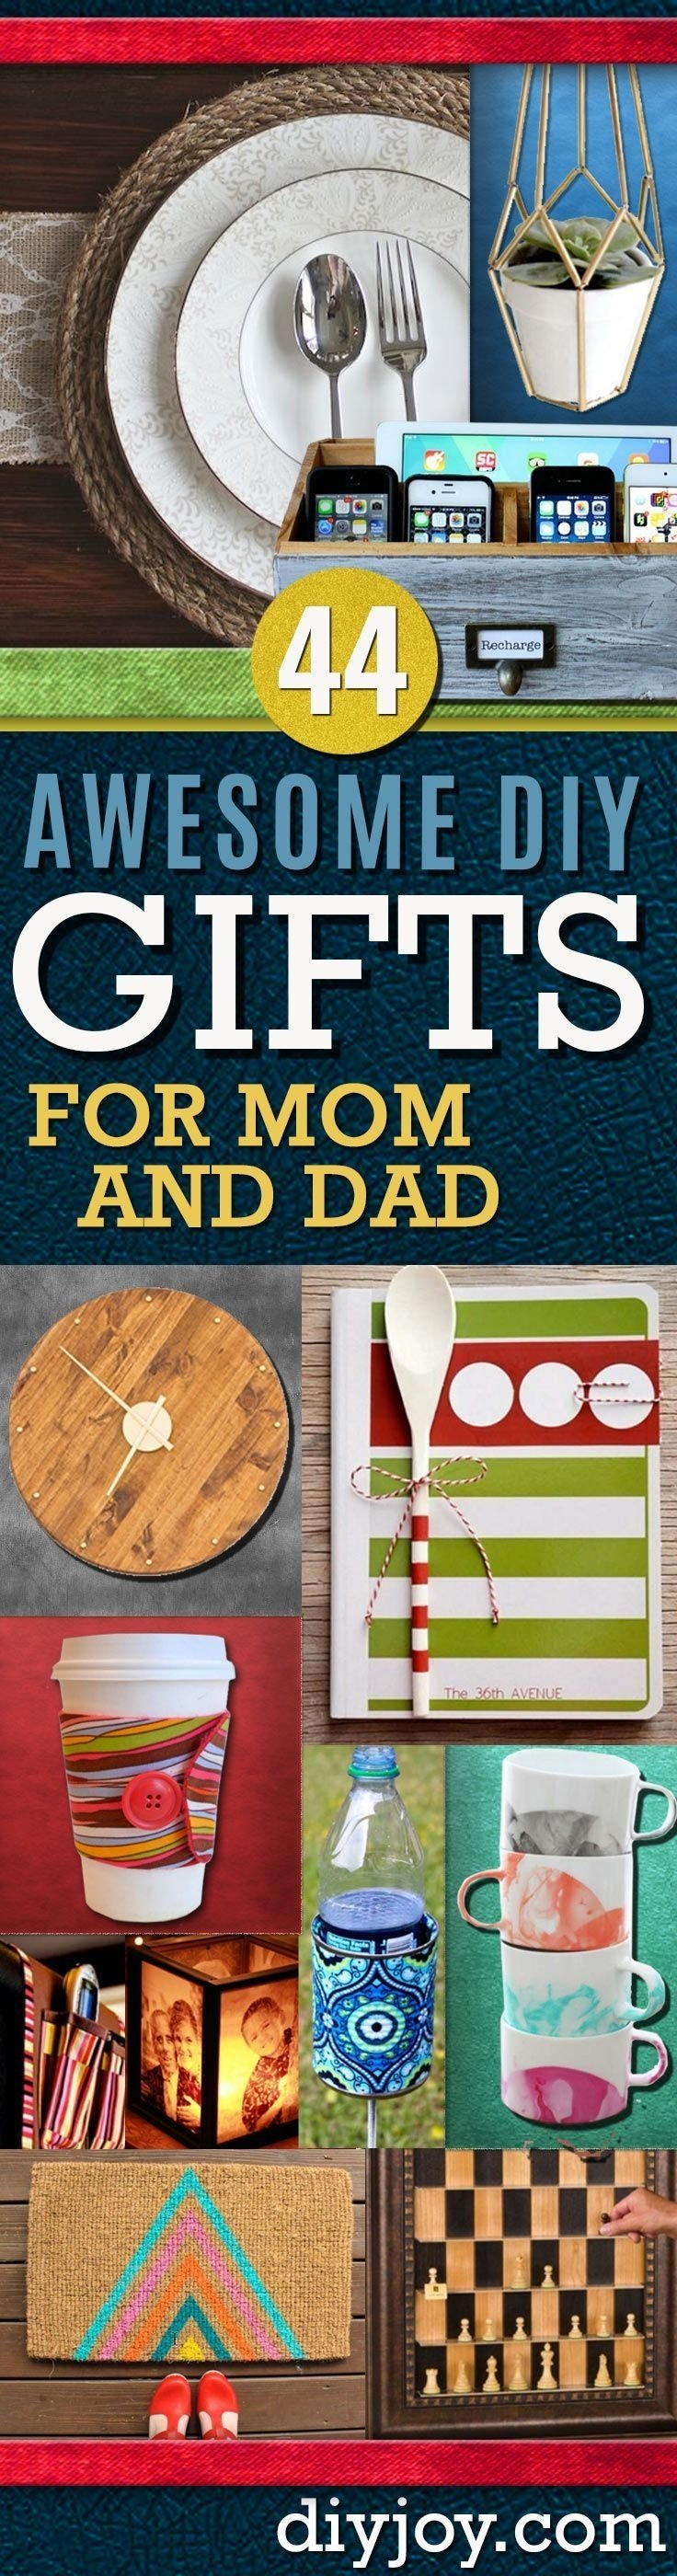 10 Trendy Holiday Gift Ideas For Mom cool christmas gifts to make for your parents dollar store crafts 1 2021